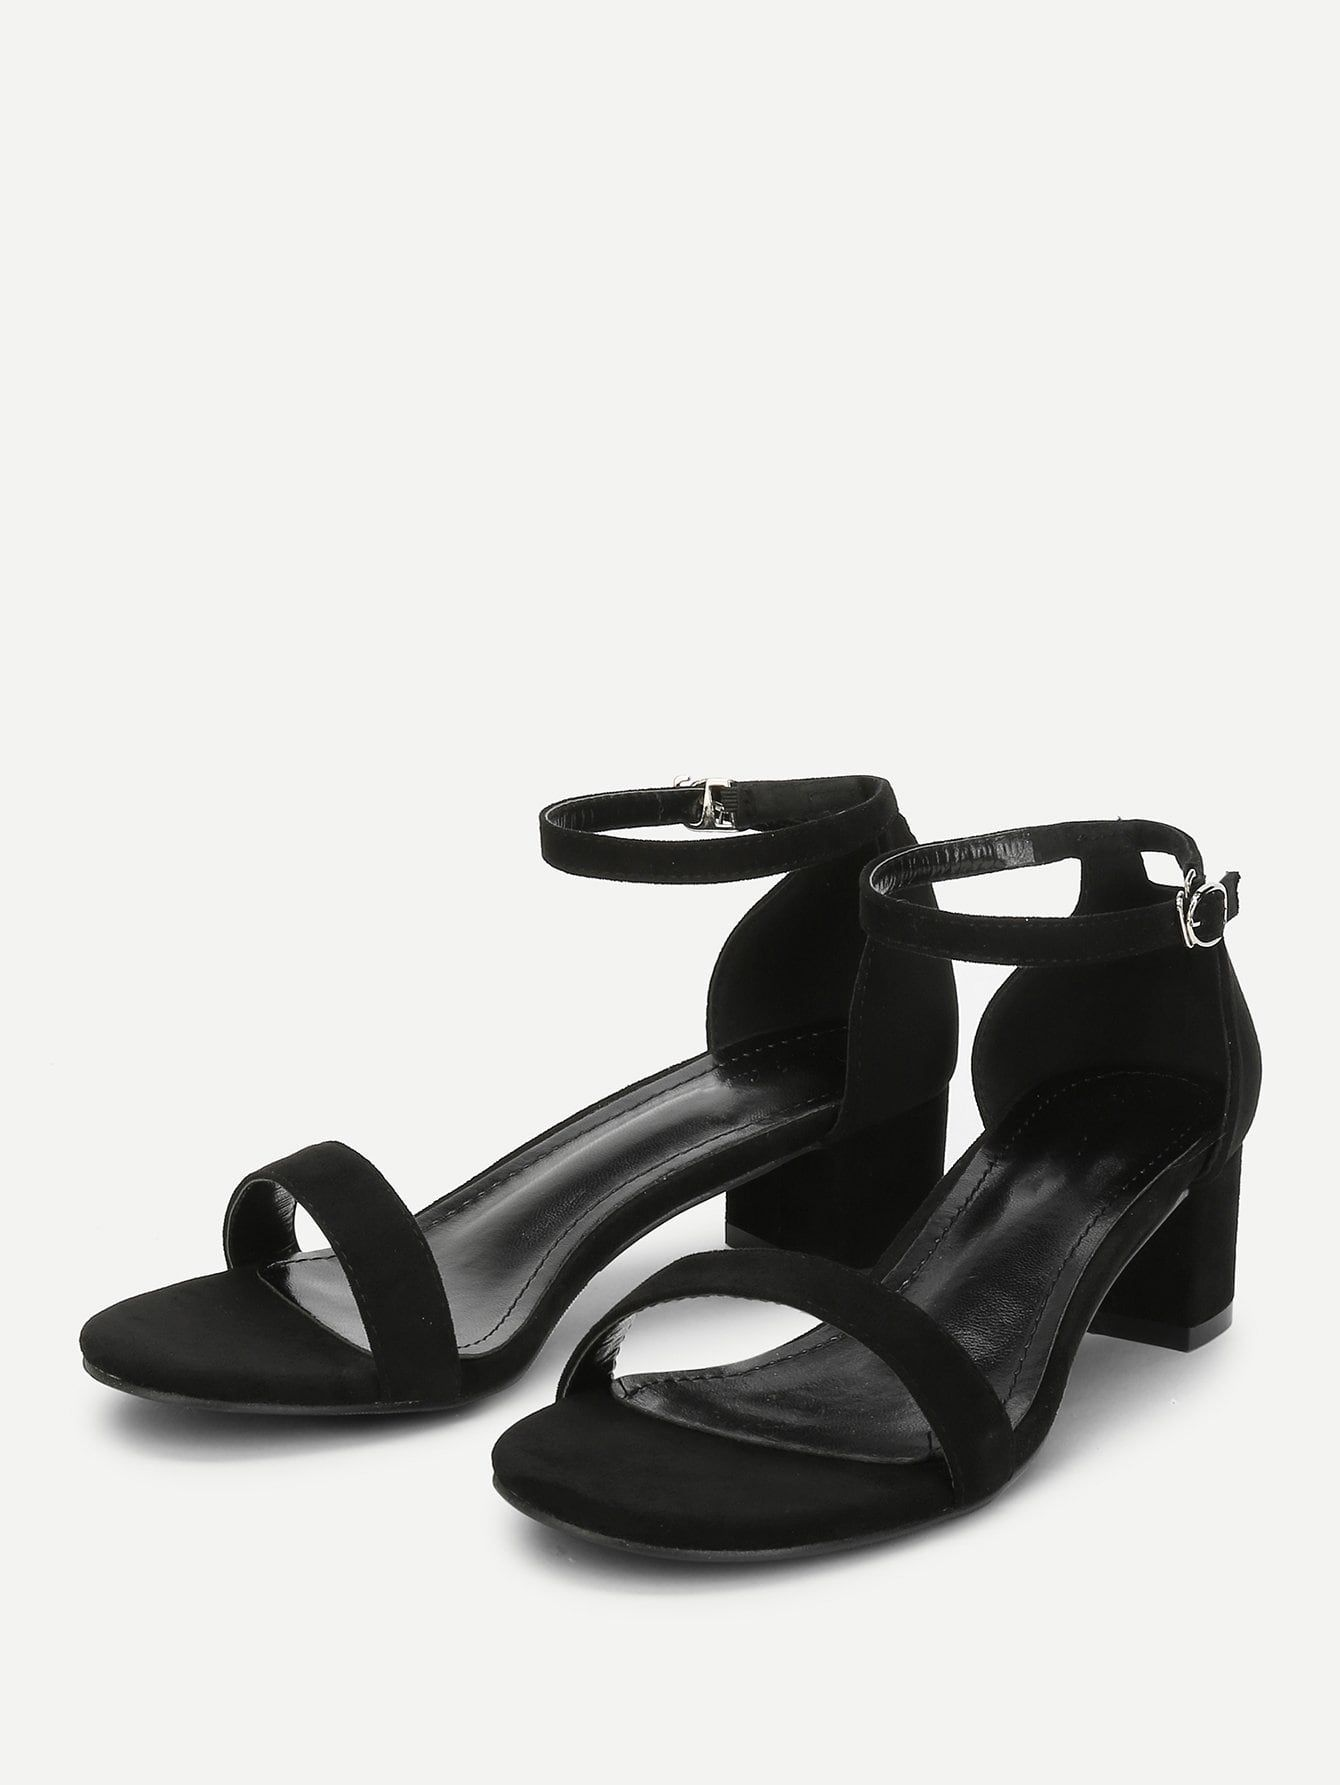 5d811ac7b6c7 Elegant Open Toe Ankle strap Black Mid Heel Chunky Ankle Strap Two Part  Block-Heel Sandals